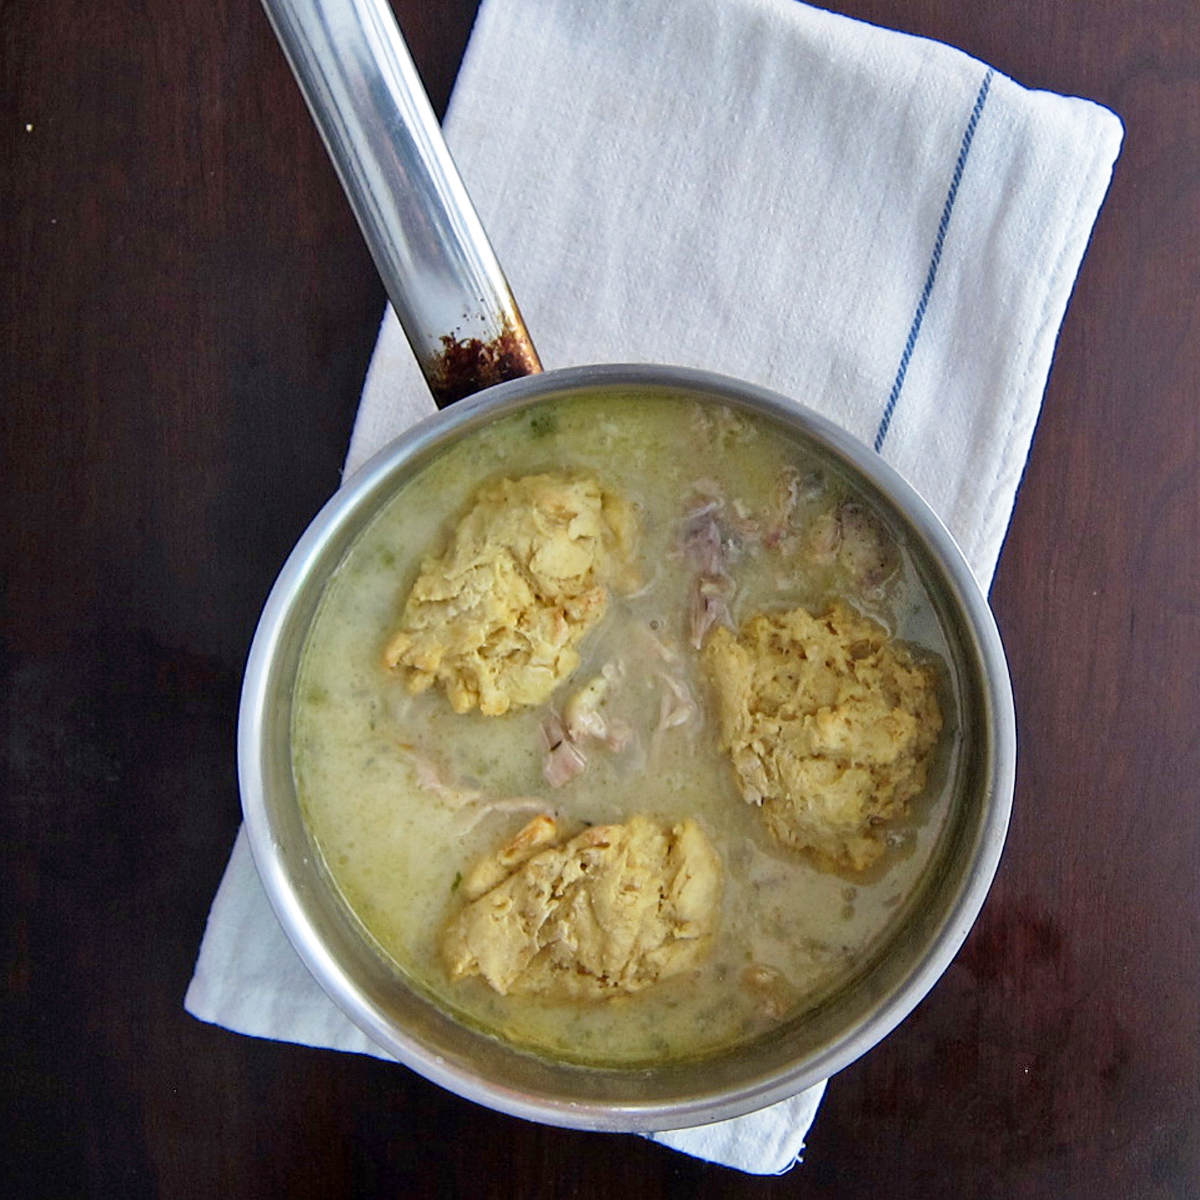 Southernsoul food recipe finder food wine coconut chicken with dumplings forumfinder Gallery